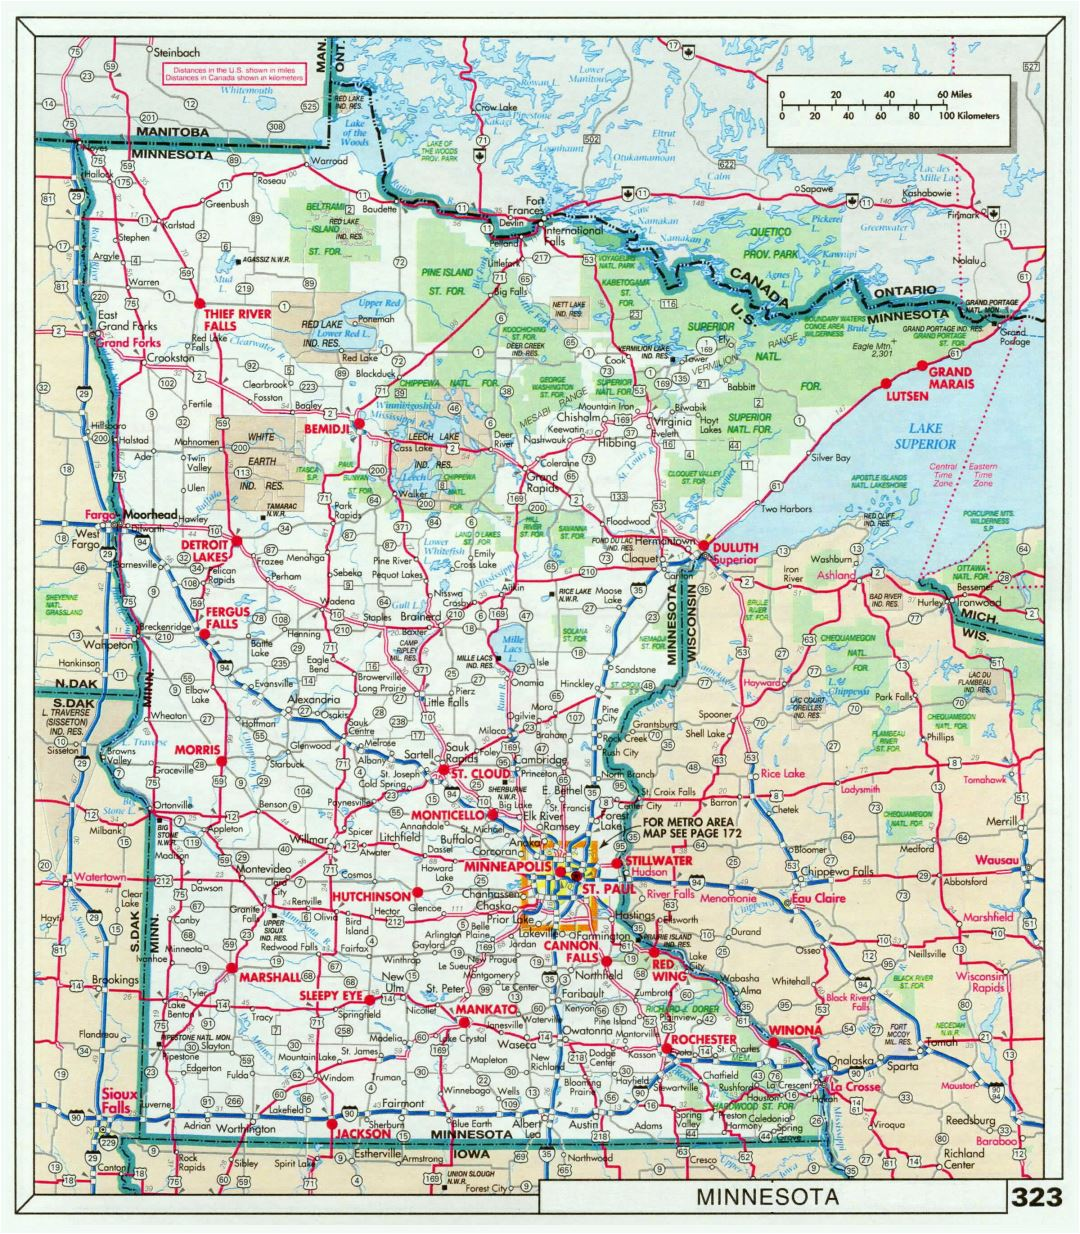 Large detailed roads and highways map of Minnesota state with national parks and cities